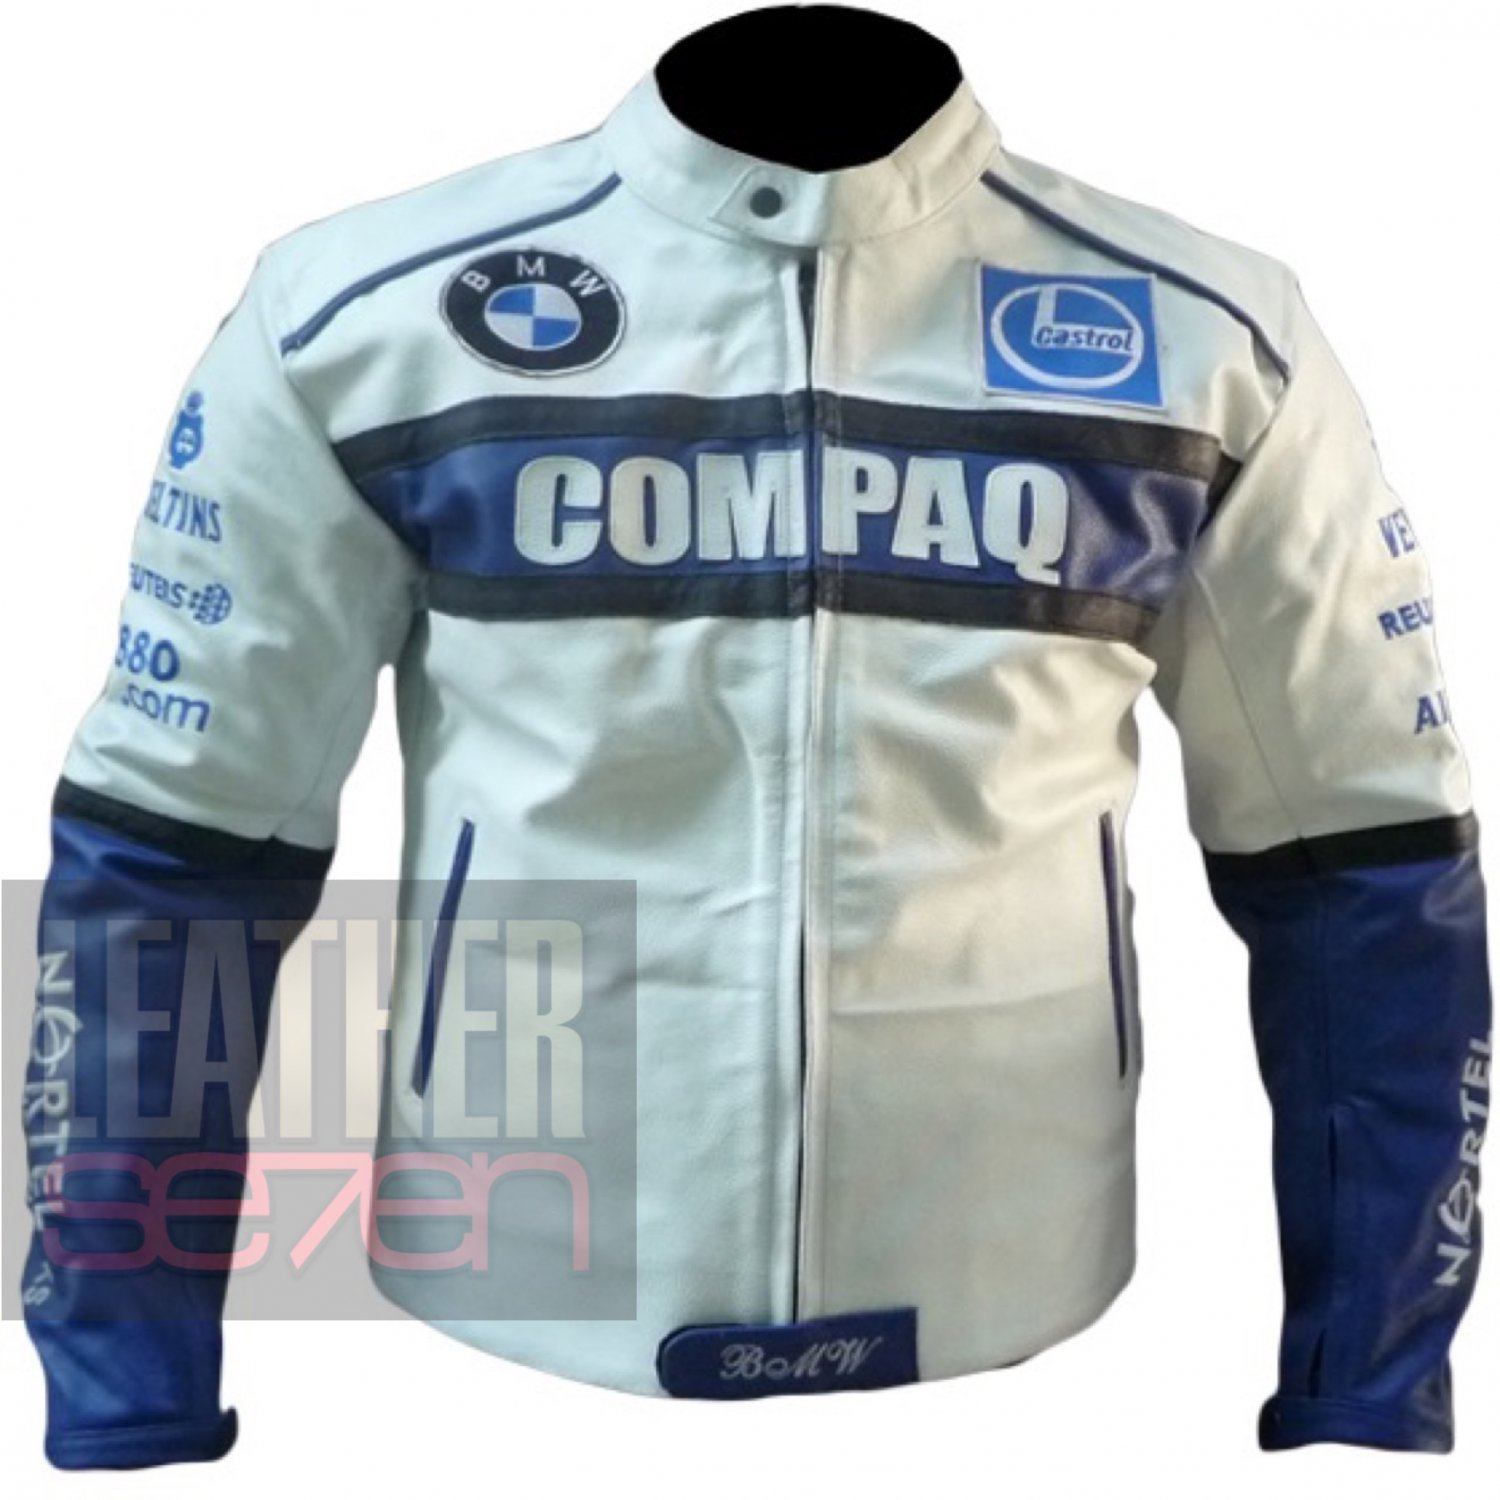 Excellent Quality Cowhide Leather Motorbike Safety Jacket ... BMW Compaq White